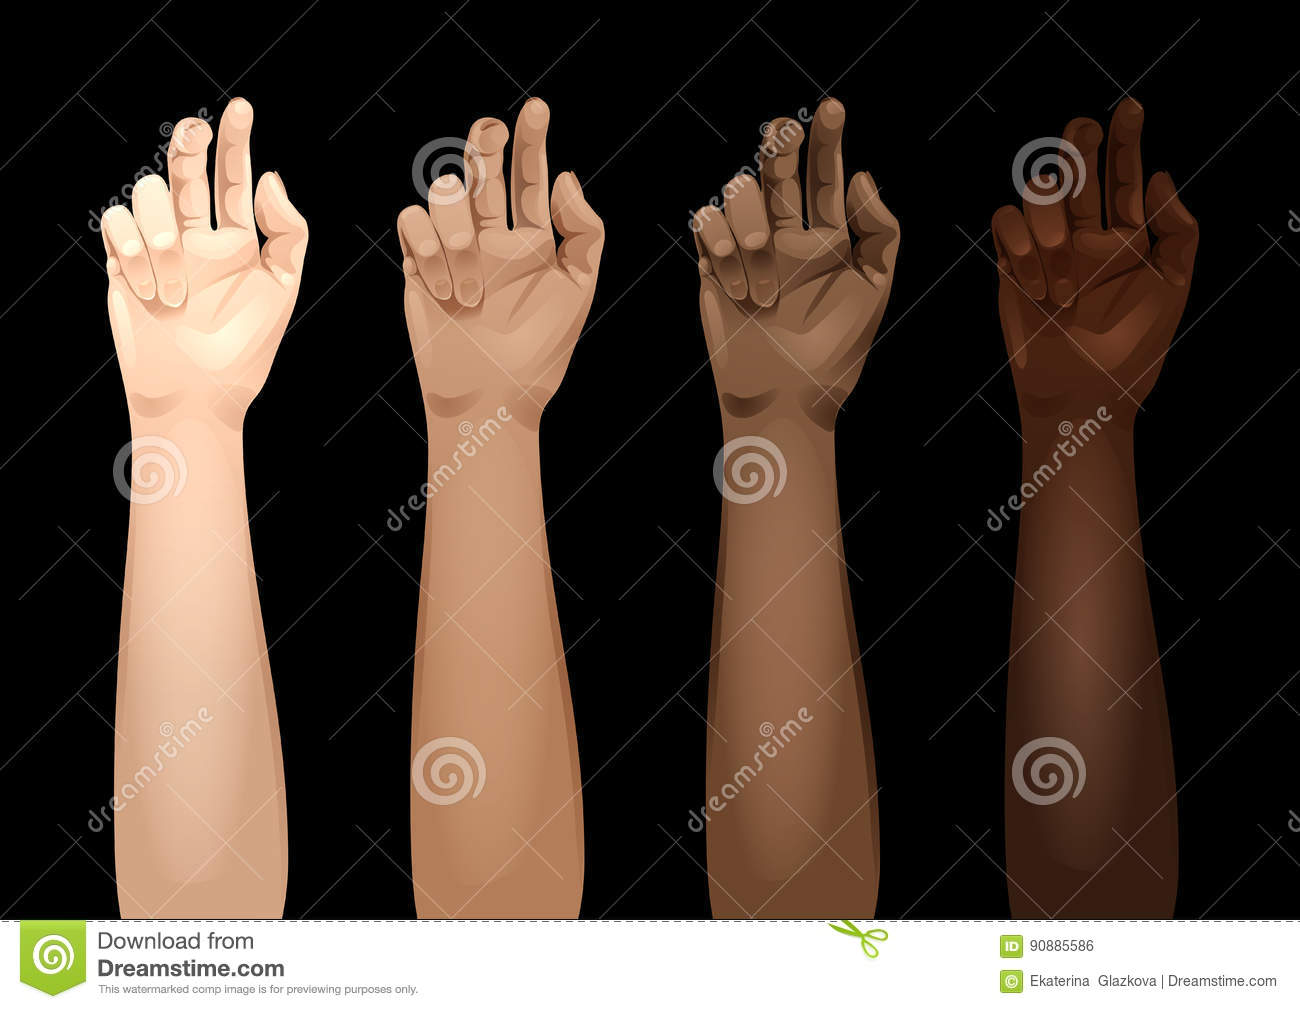 Forearm Template: Women Arms Templates Stock Vector. Illustration Of Nation